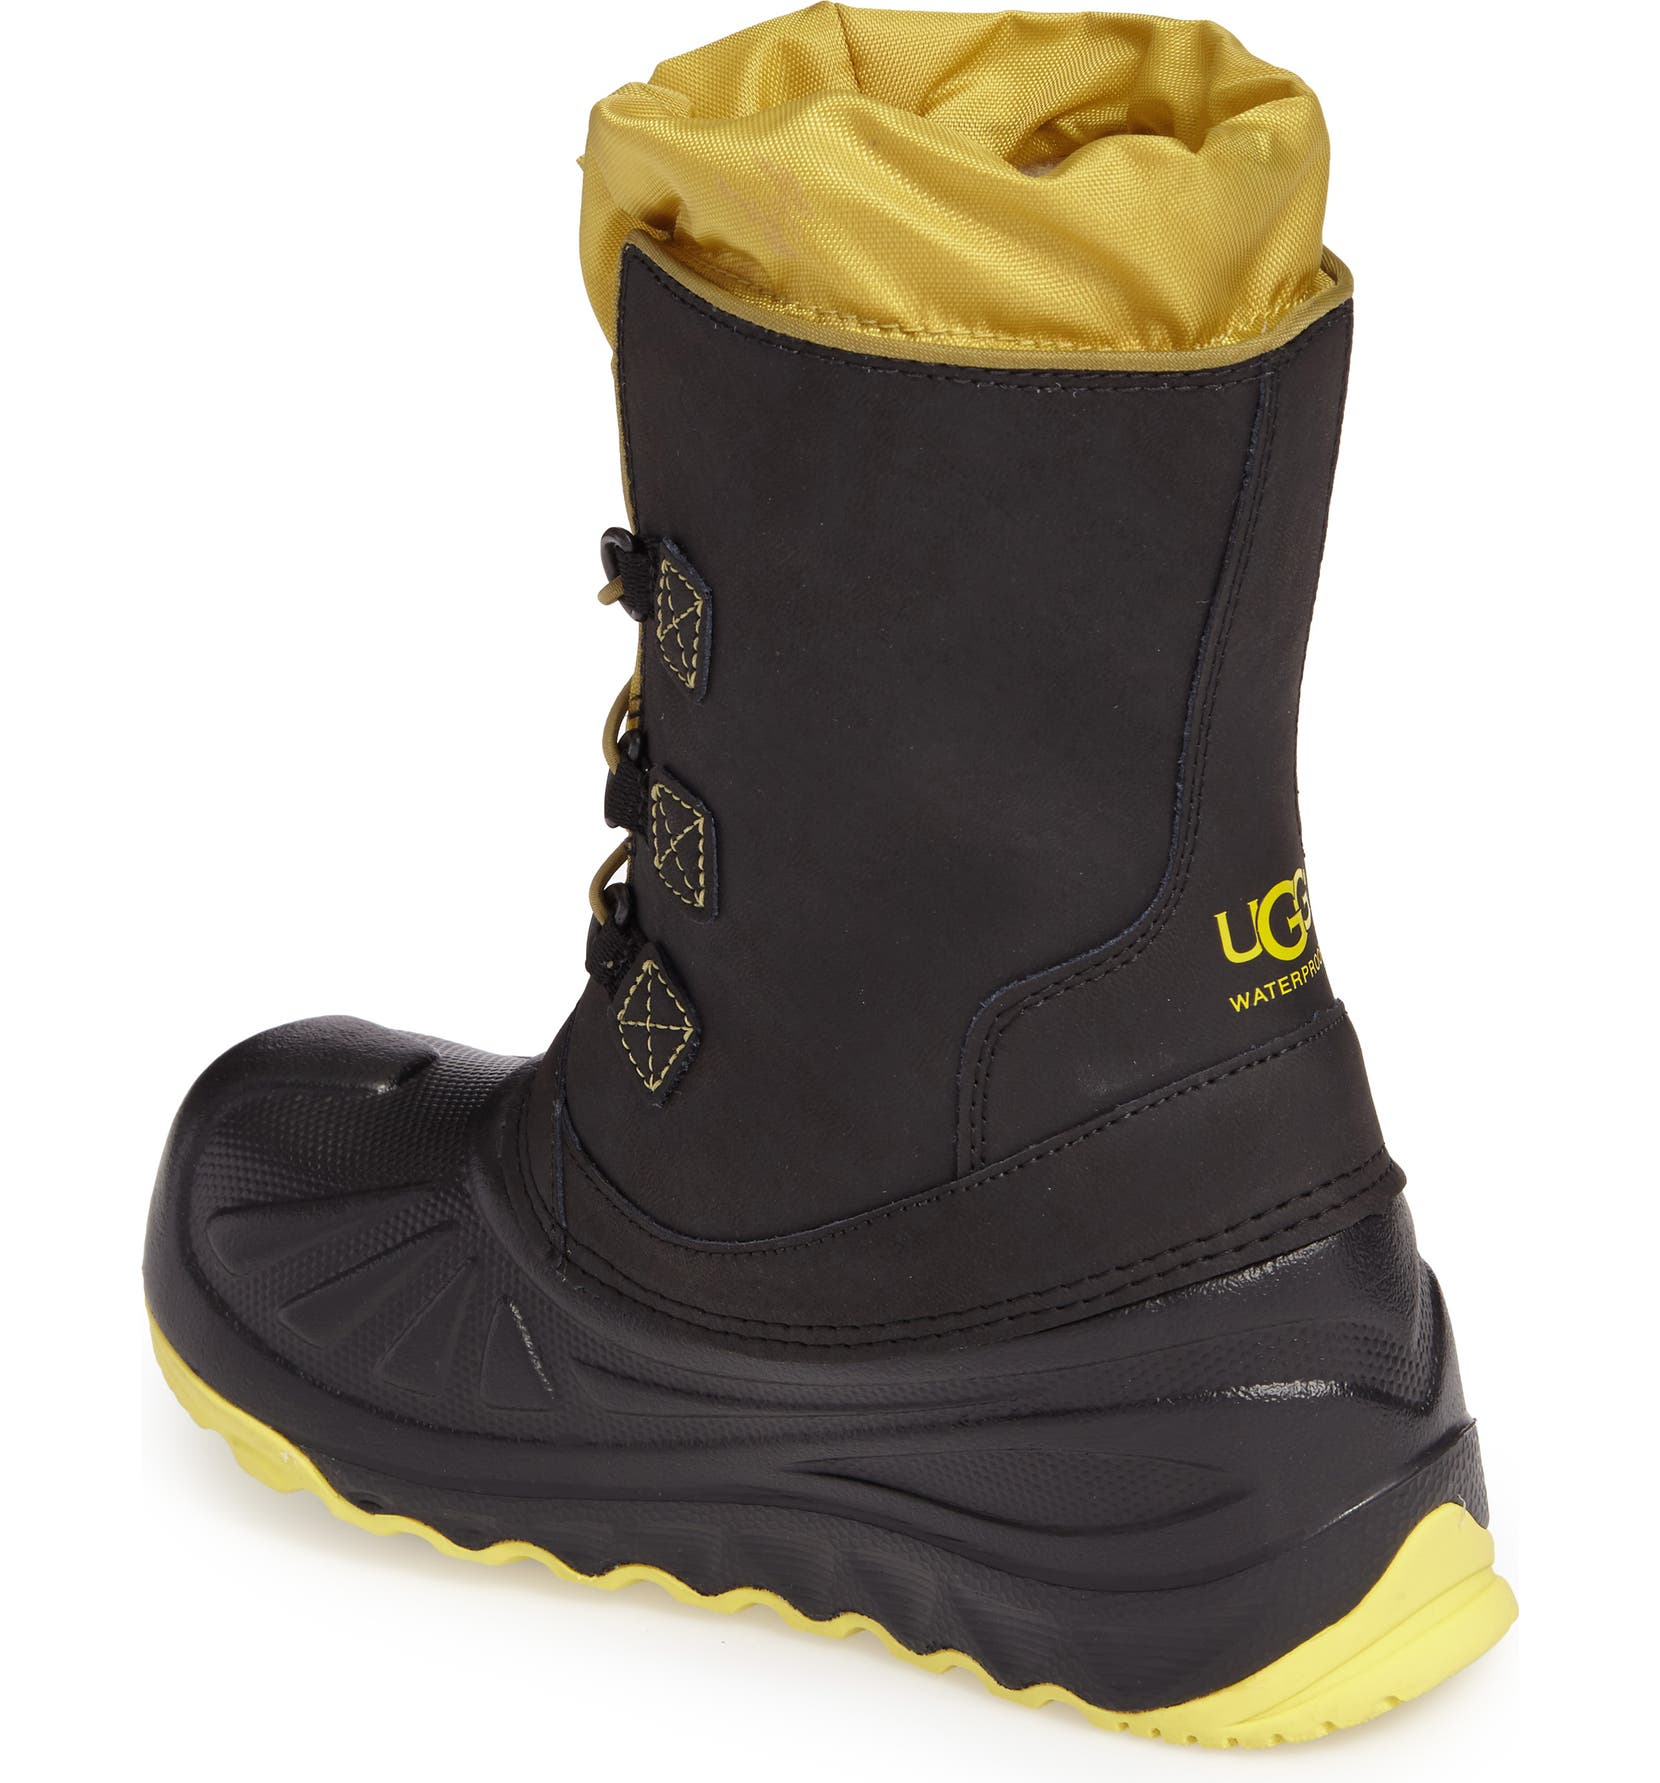 5924f45704c Ludvig Waterproof Thinsulate™ Insulated Winter Boot